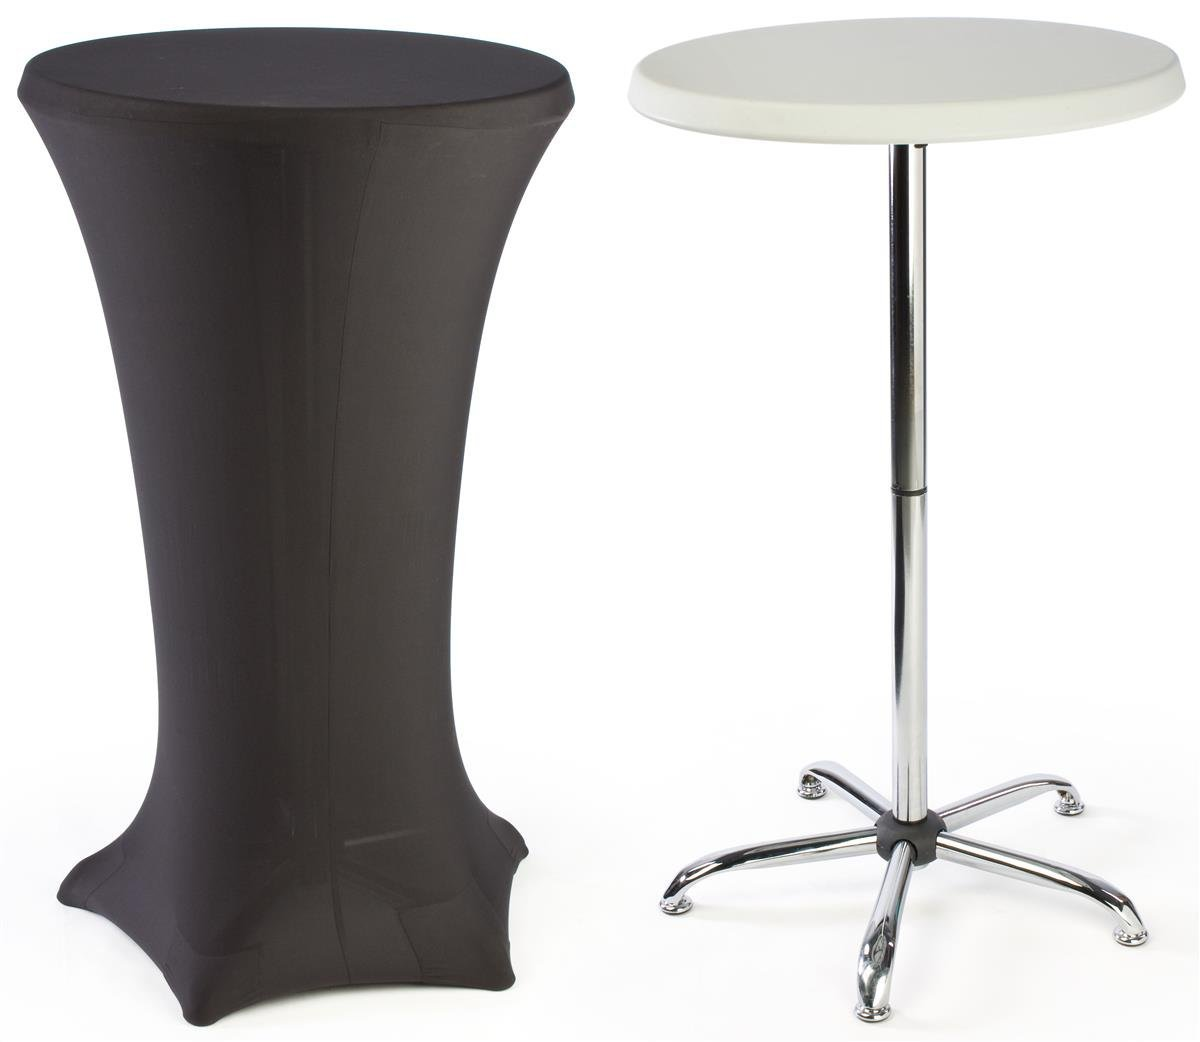 round coffee tables special tall stainless steel legs cocktail table with white pedestal accent hairpin leg stool clamp lamp howard elliott mirrors ceramic rattan cube side barn